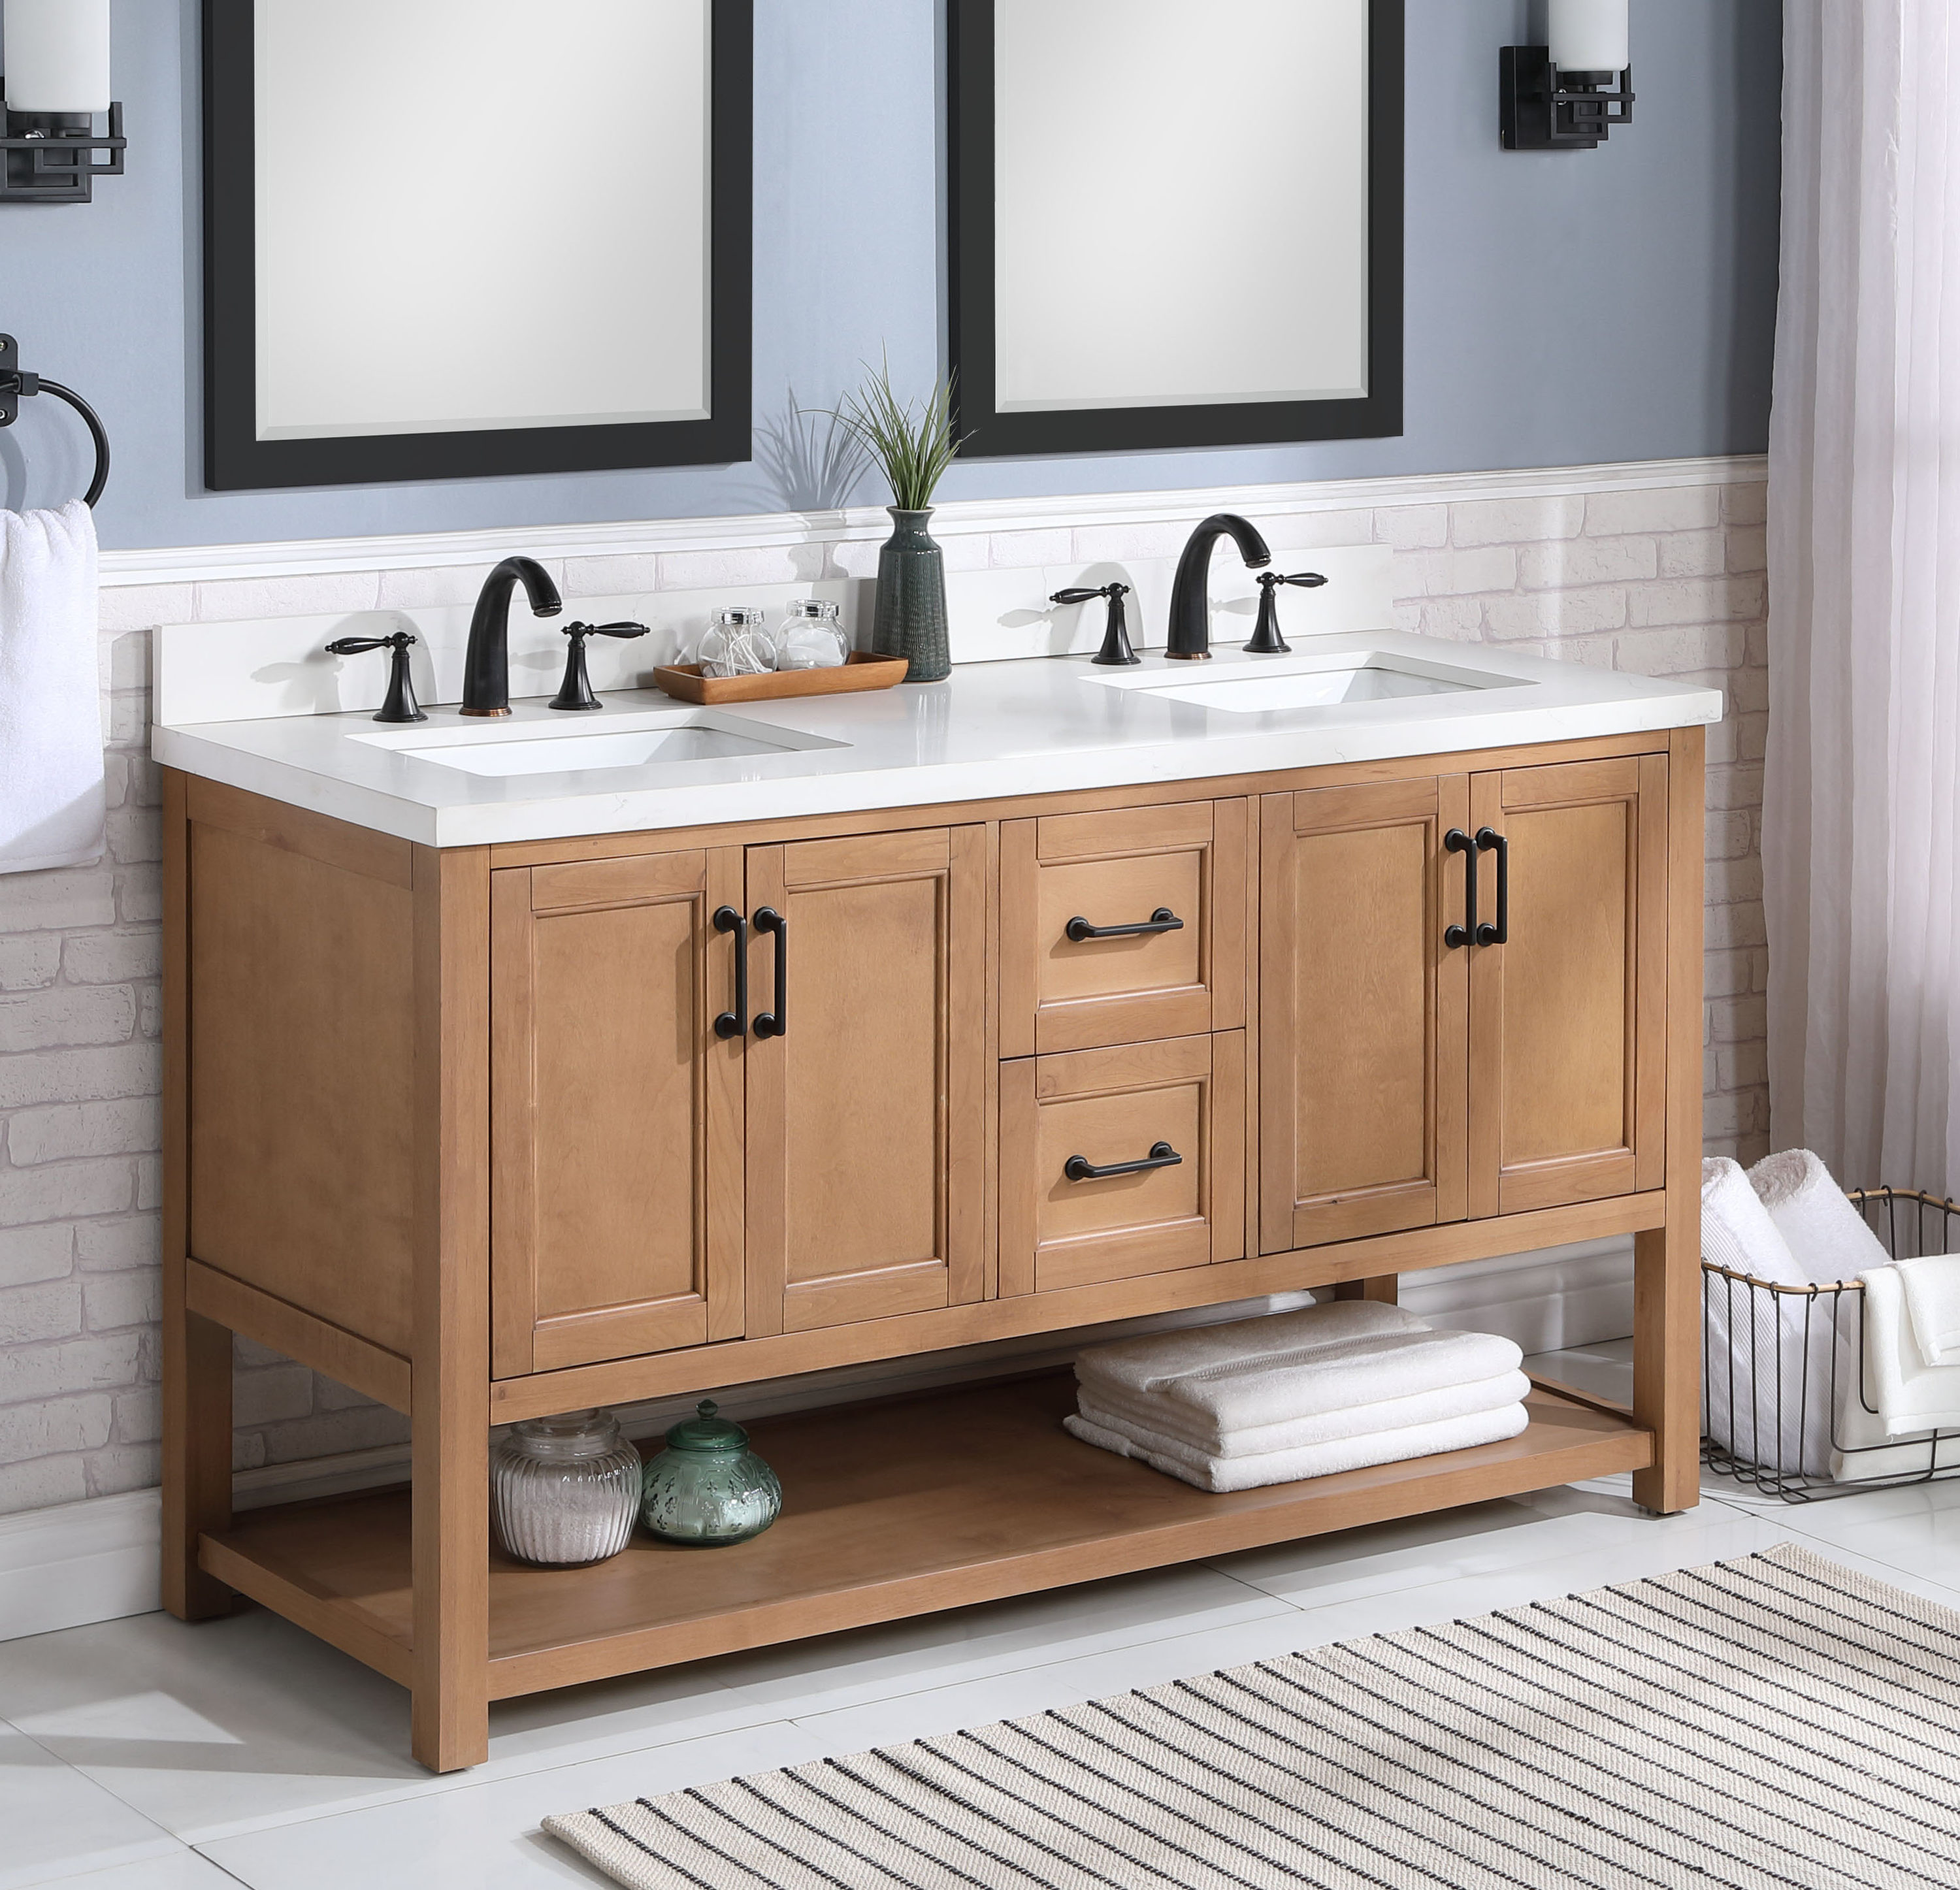 allen + roth Harwood 20 in Natural Undermount Double Sink Bathroom Vanity  with White and Gray Quartz Top